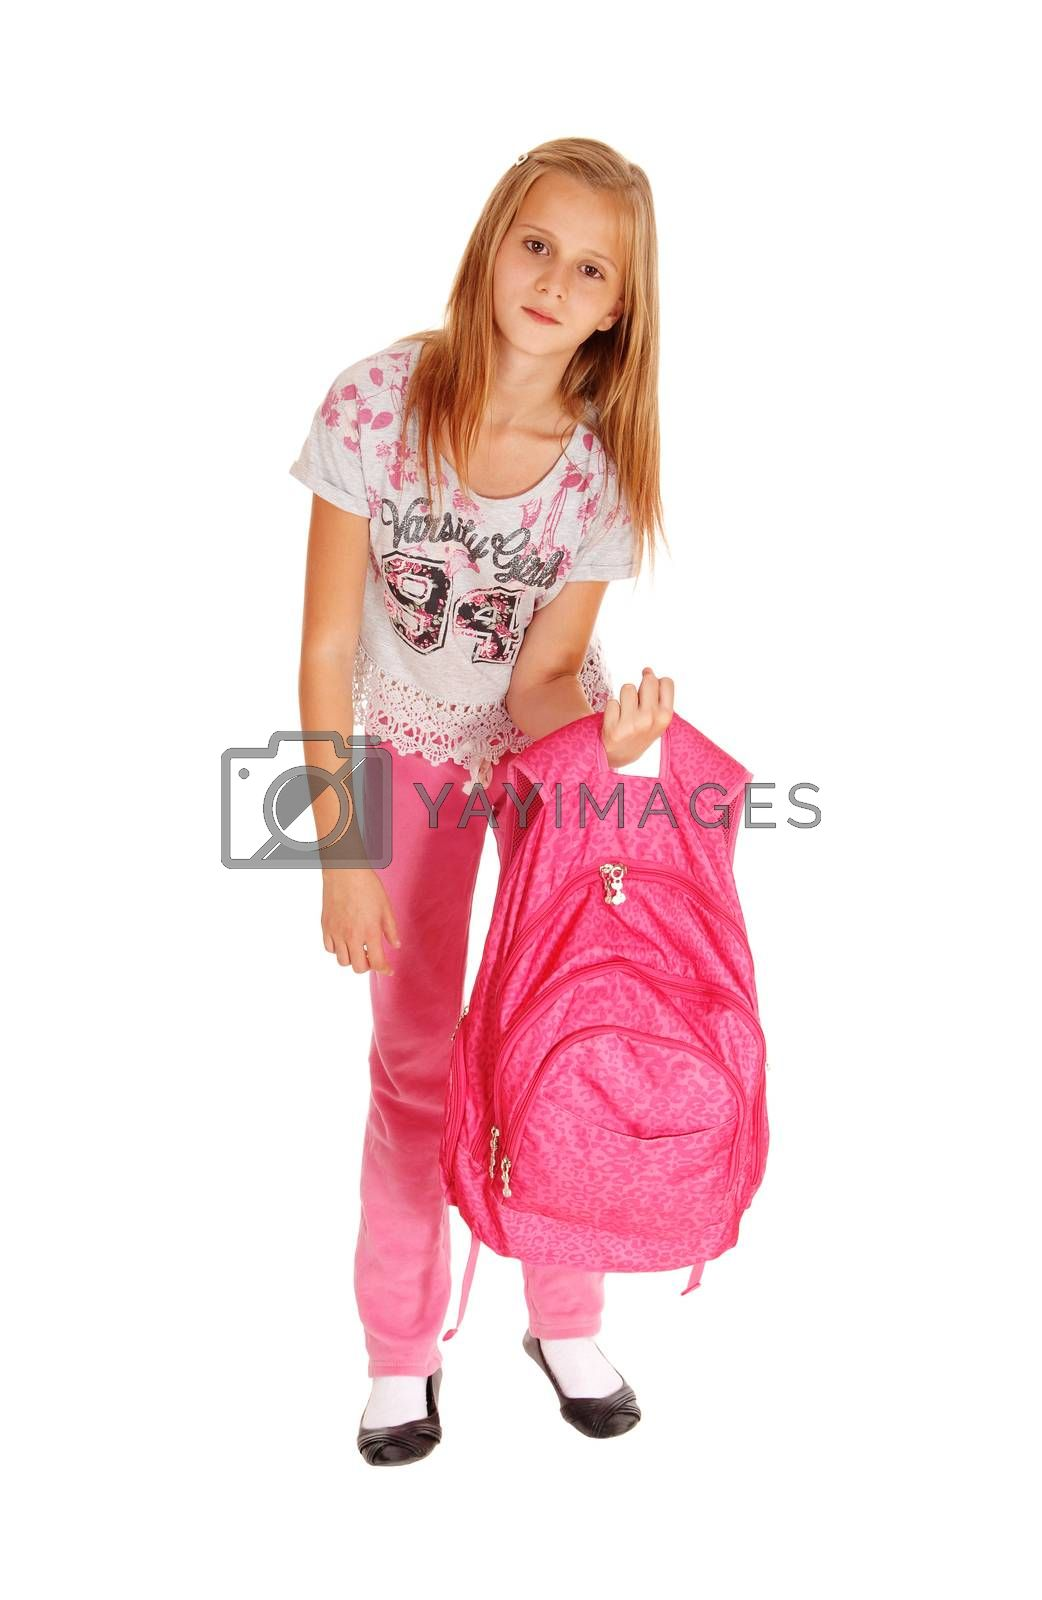 A blond pretty girl lifting her heavy pink backpack for school, standing isolated for white background.